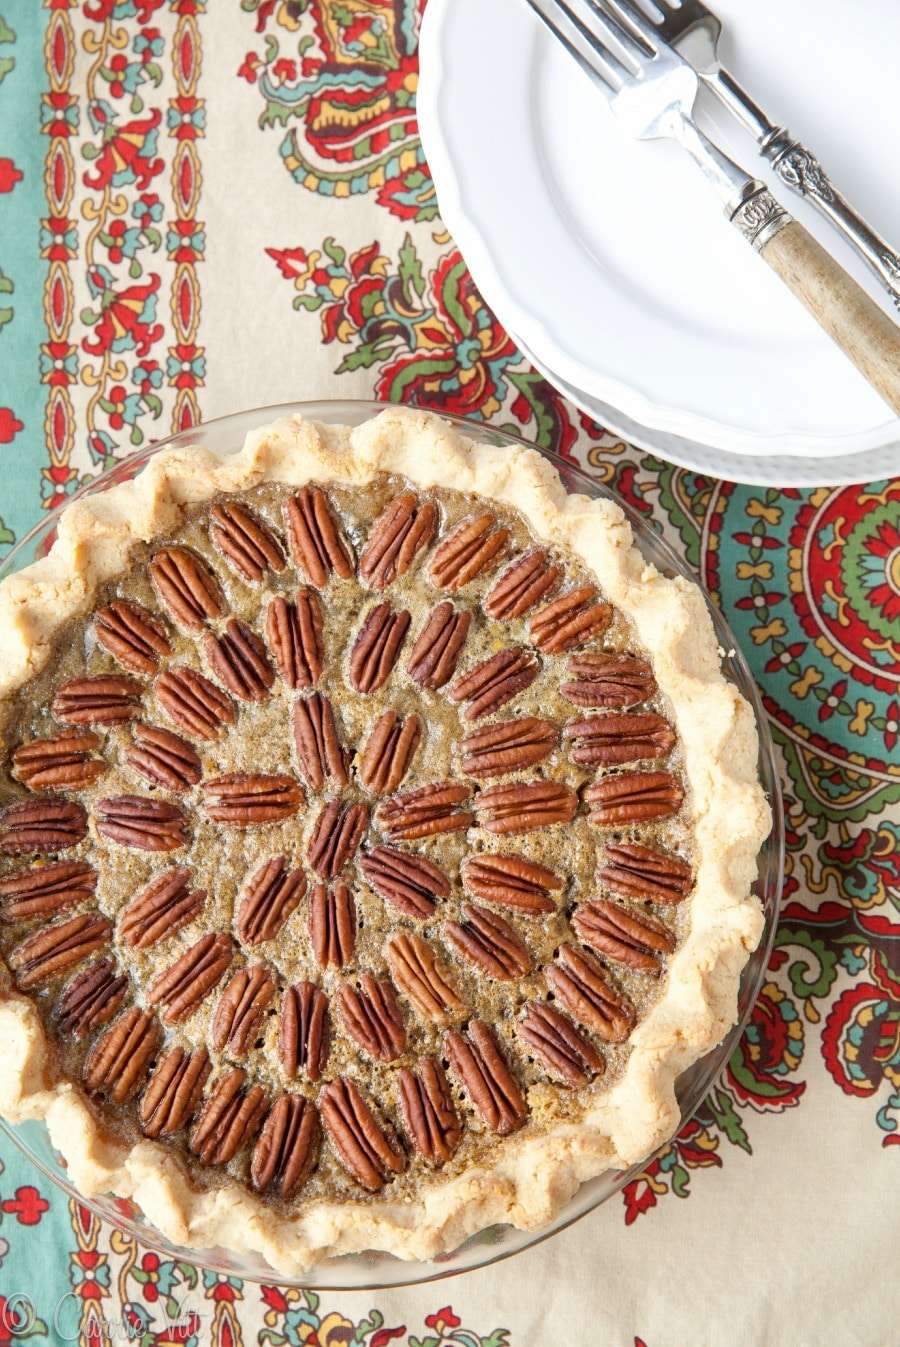 Grain-Free Pecan Pie without Corn Syrup (Paleo, Gluten Free)